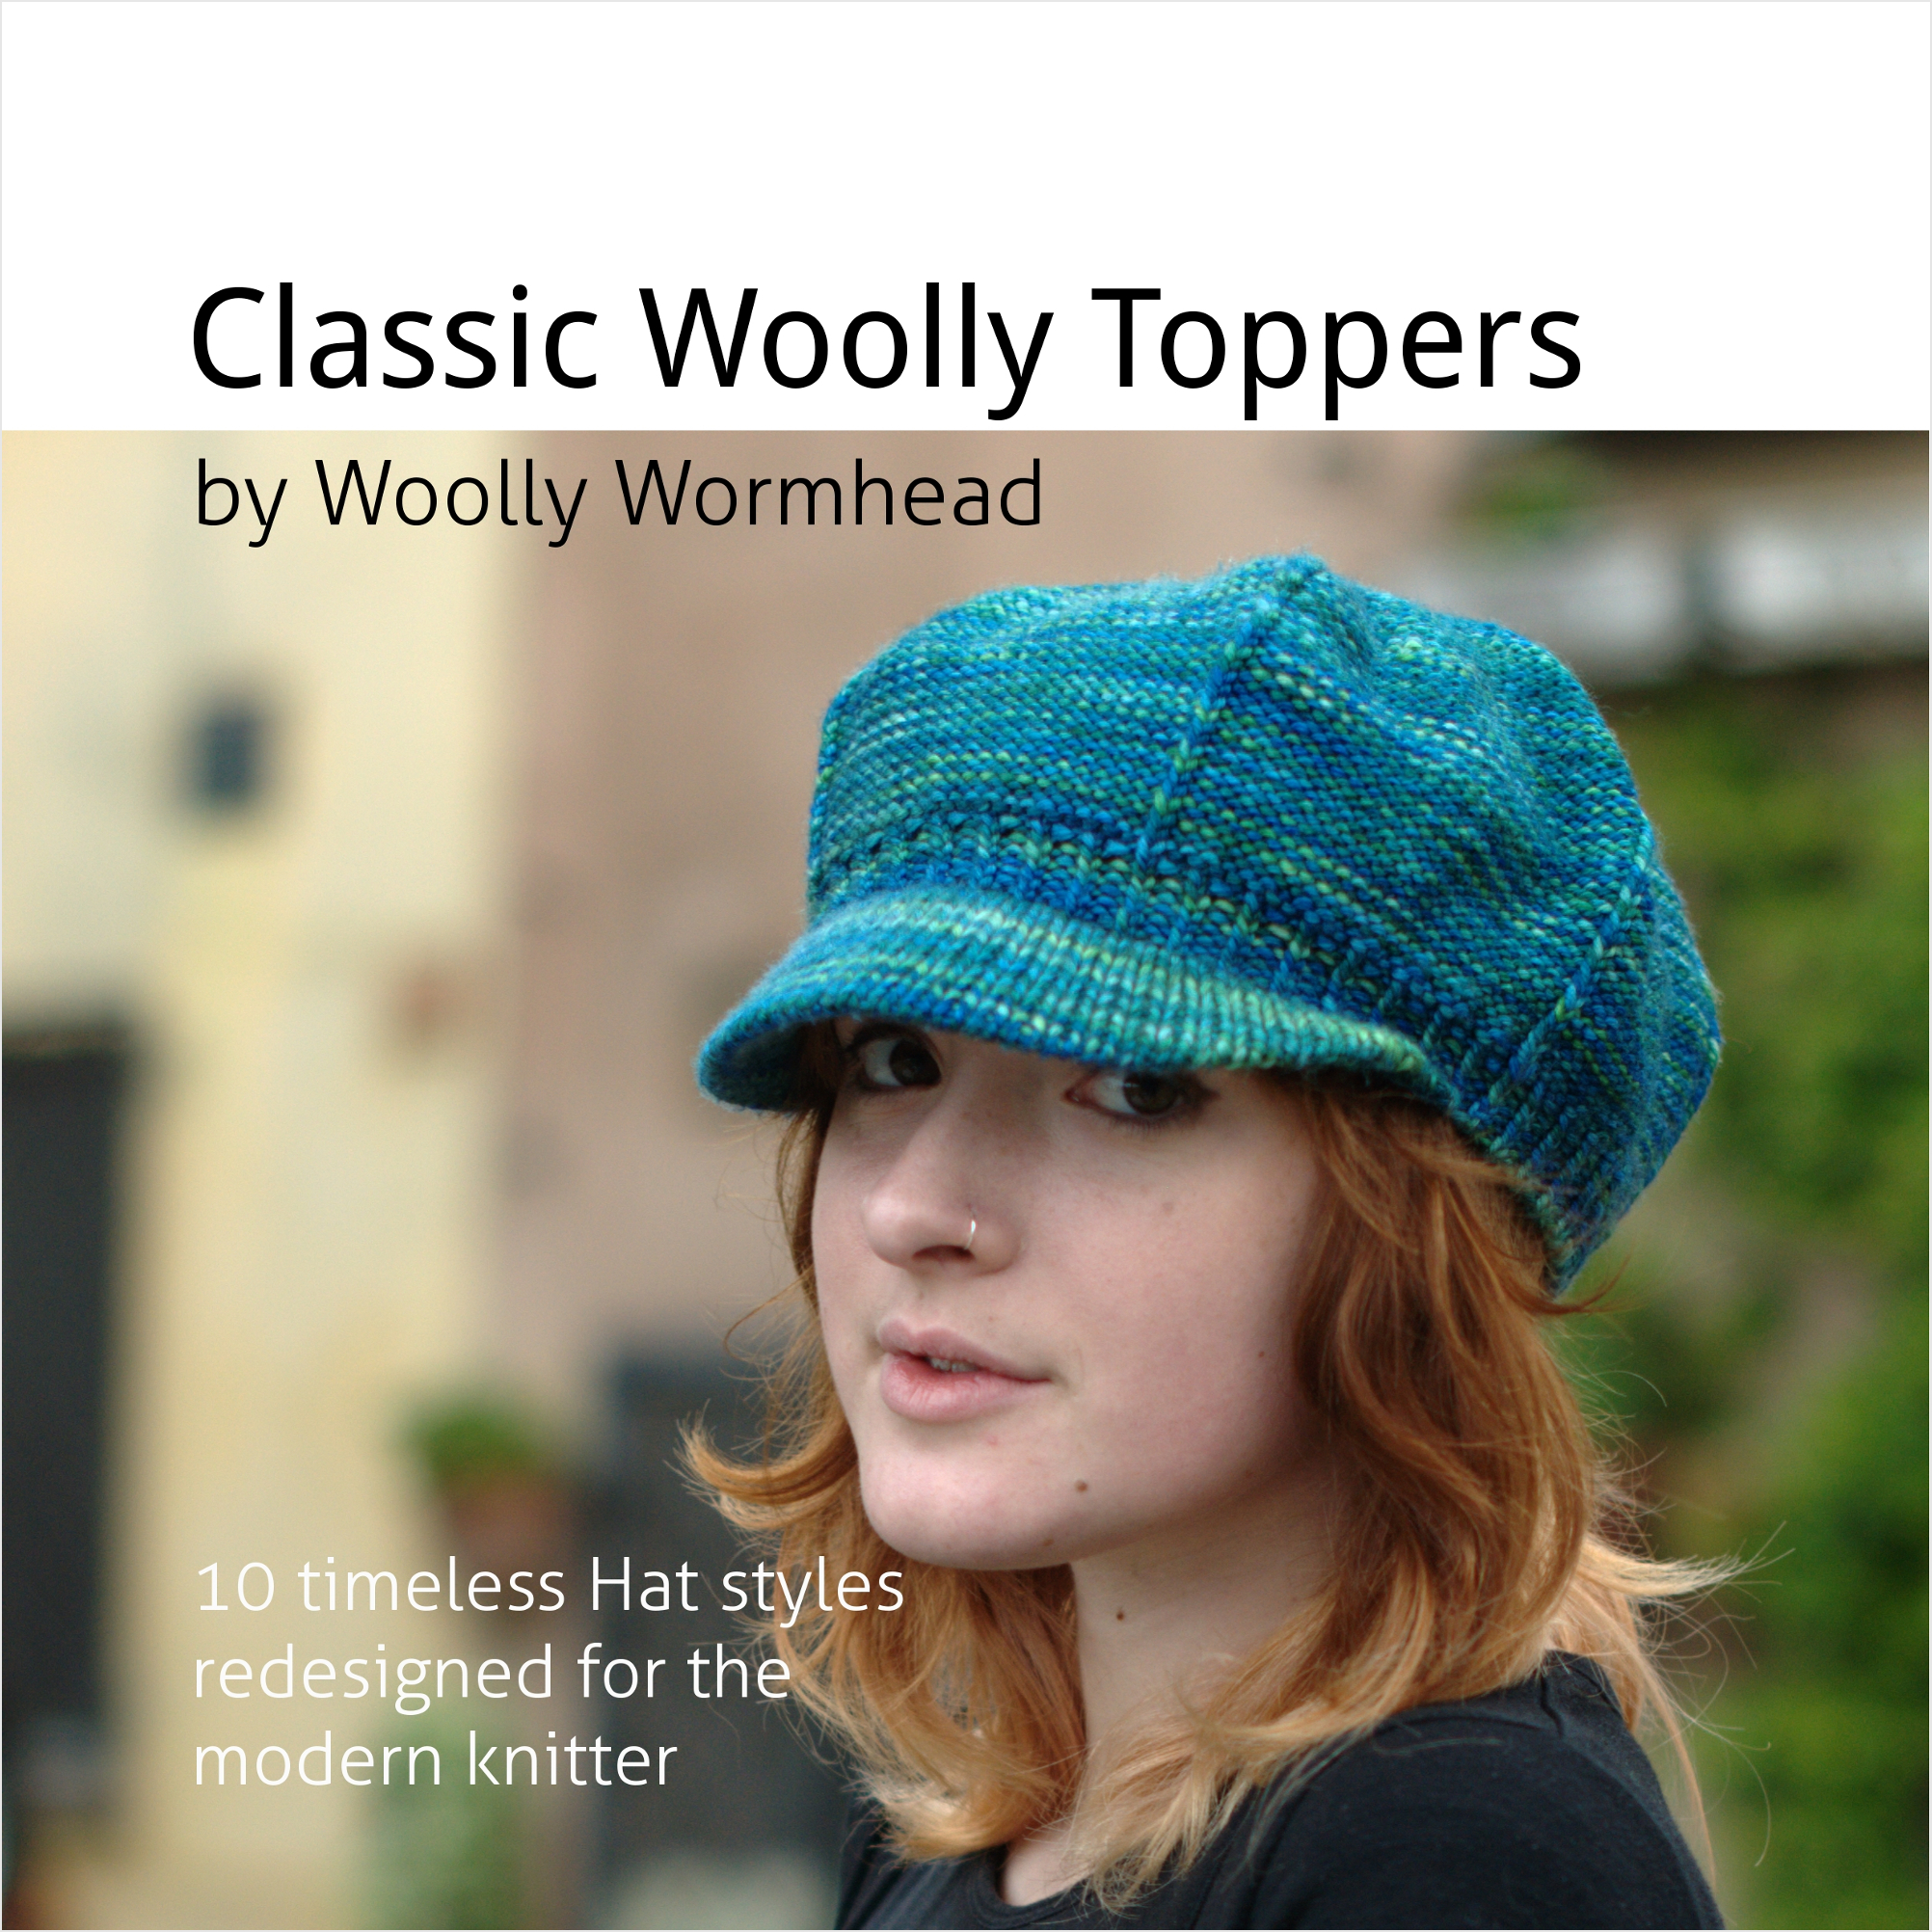 Classic Woolly Toppers - 10 timeless Hats redesigned for the modern knitter